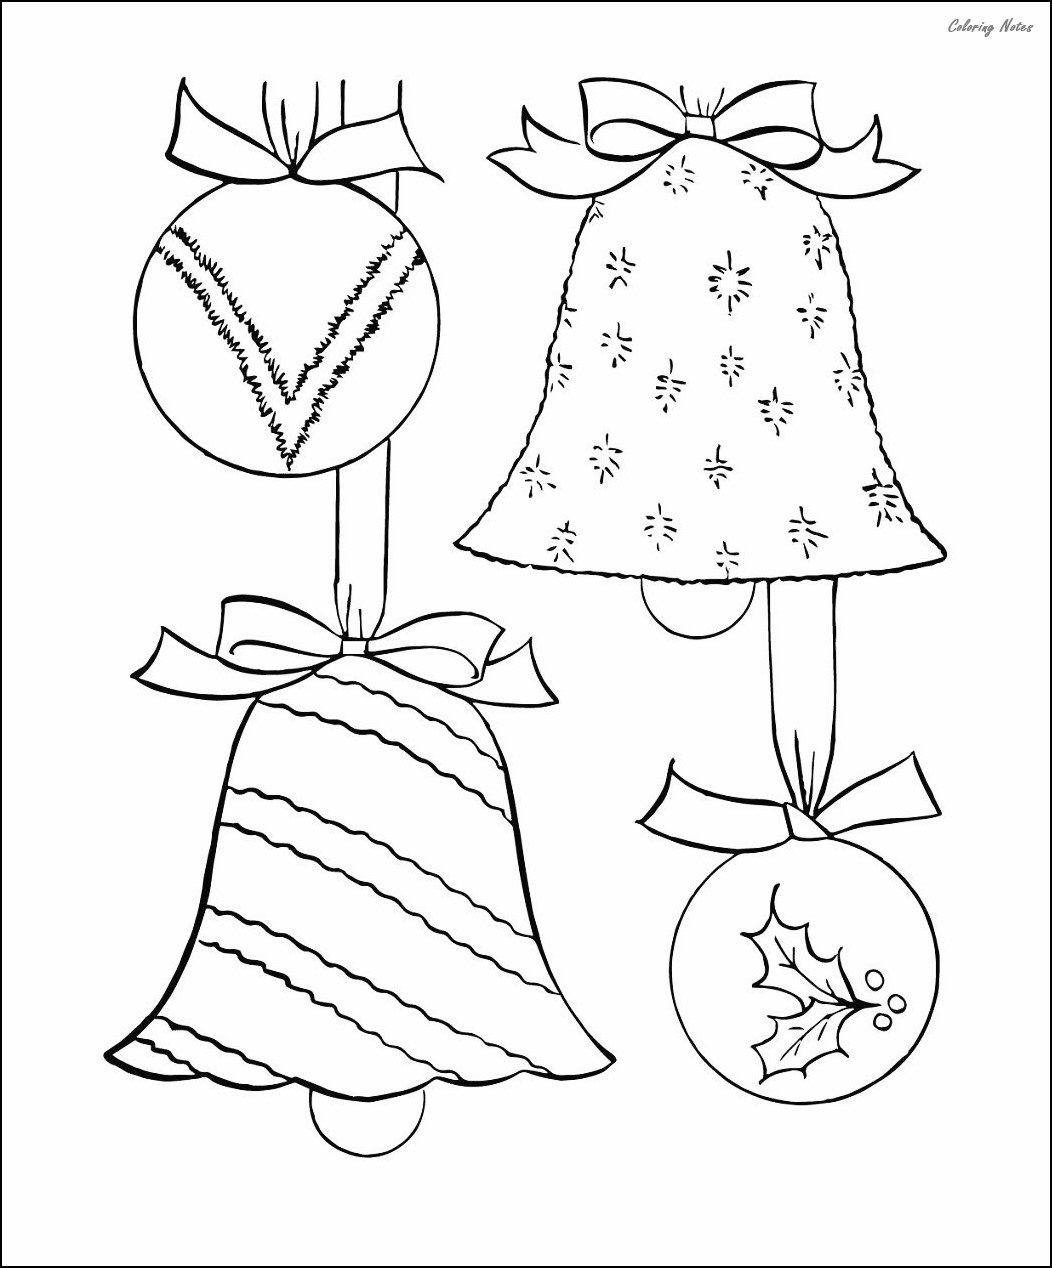 30 Best Christmas Ornaments Coloring Pages Free Printable ...